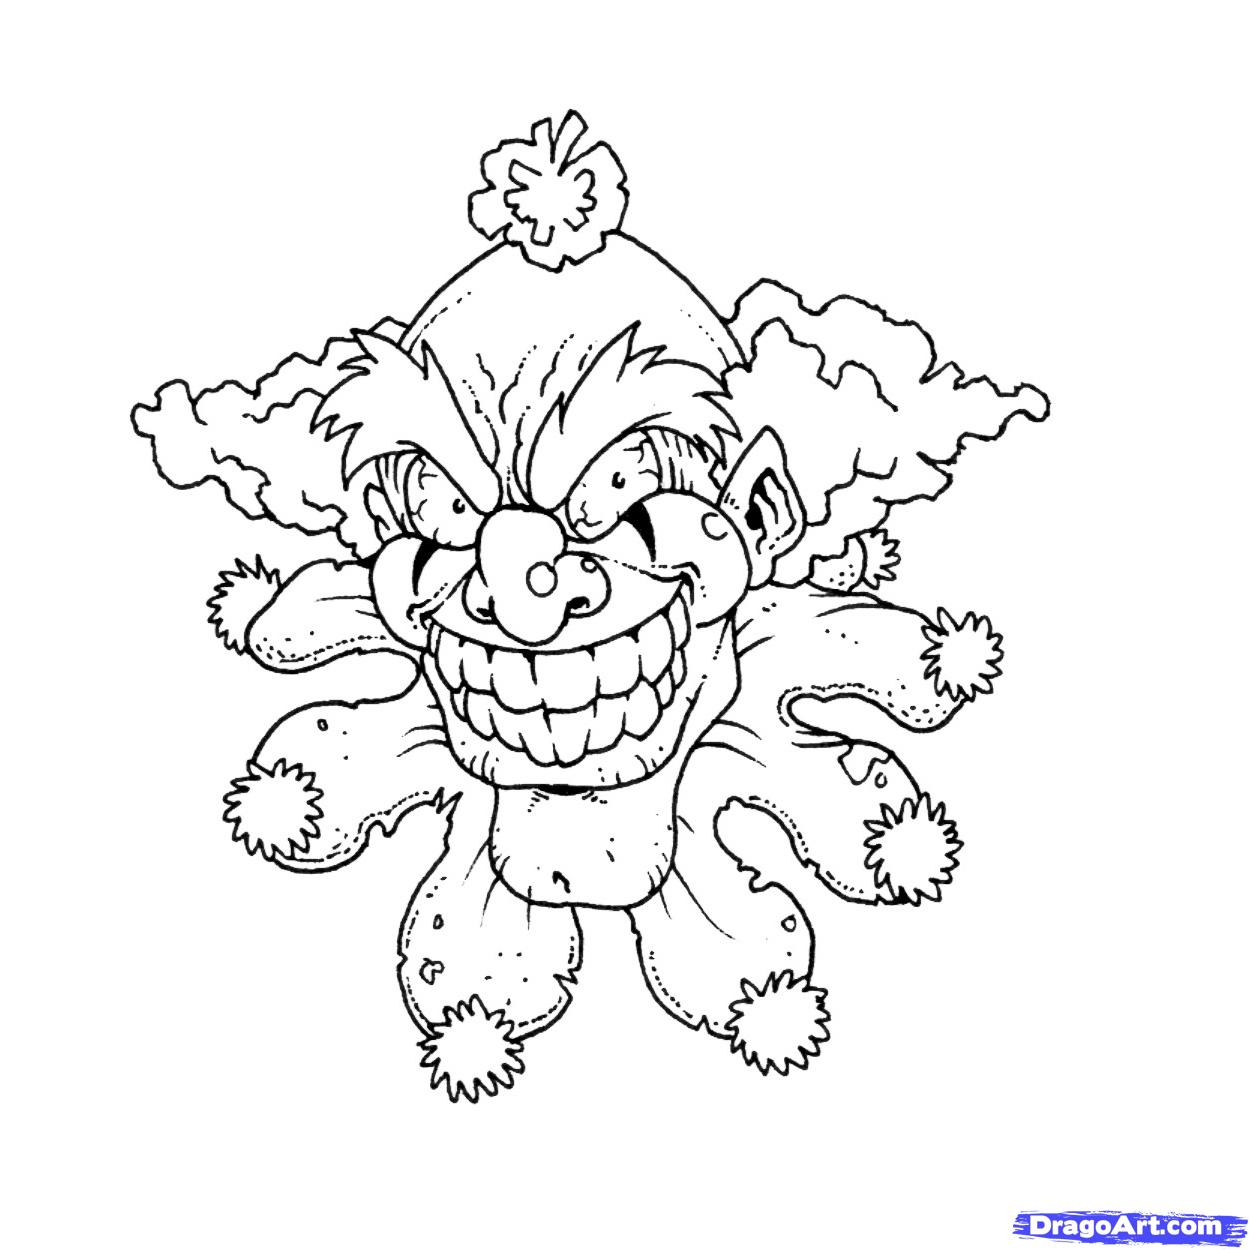 evil clown halloween coloring pages - photo#13